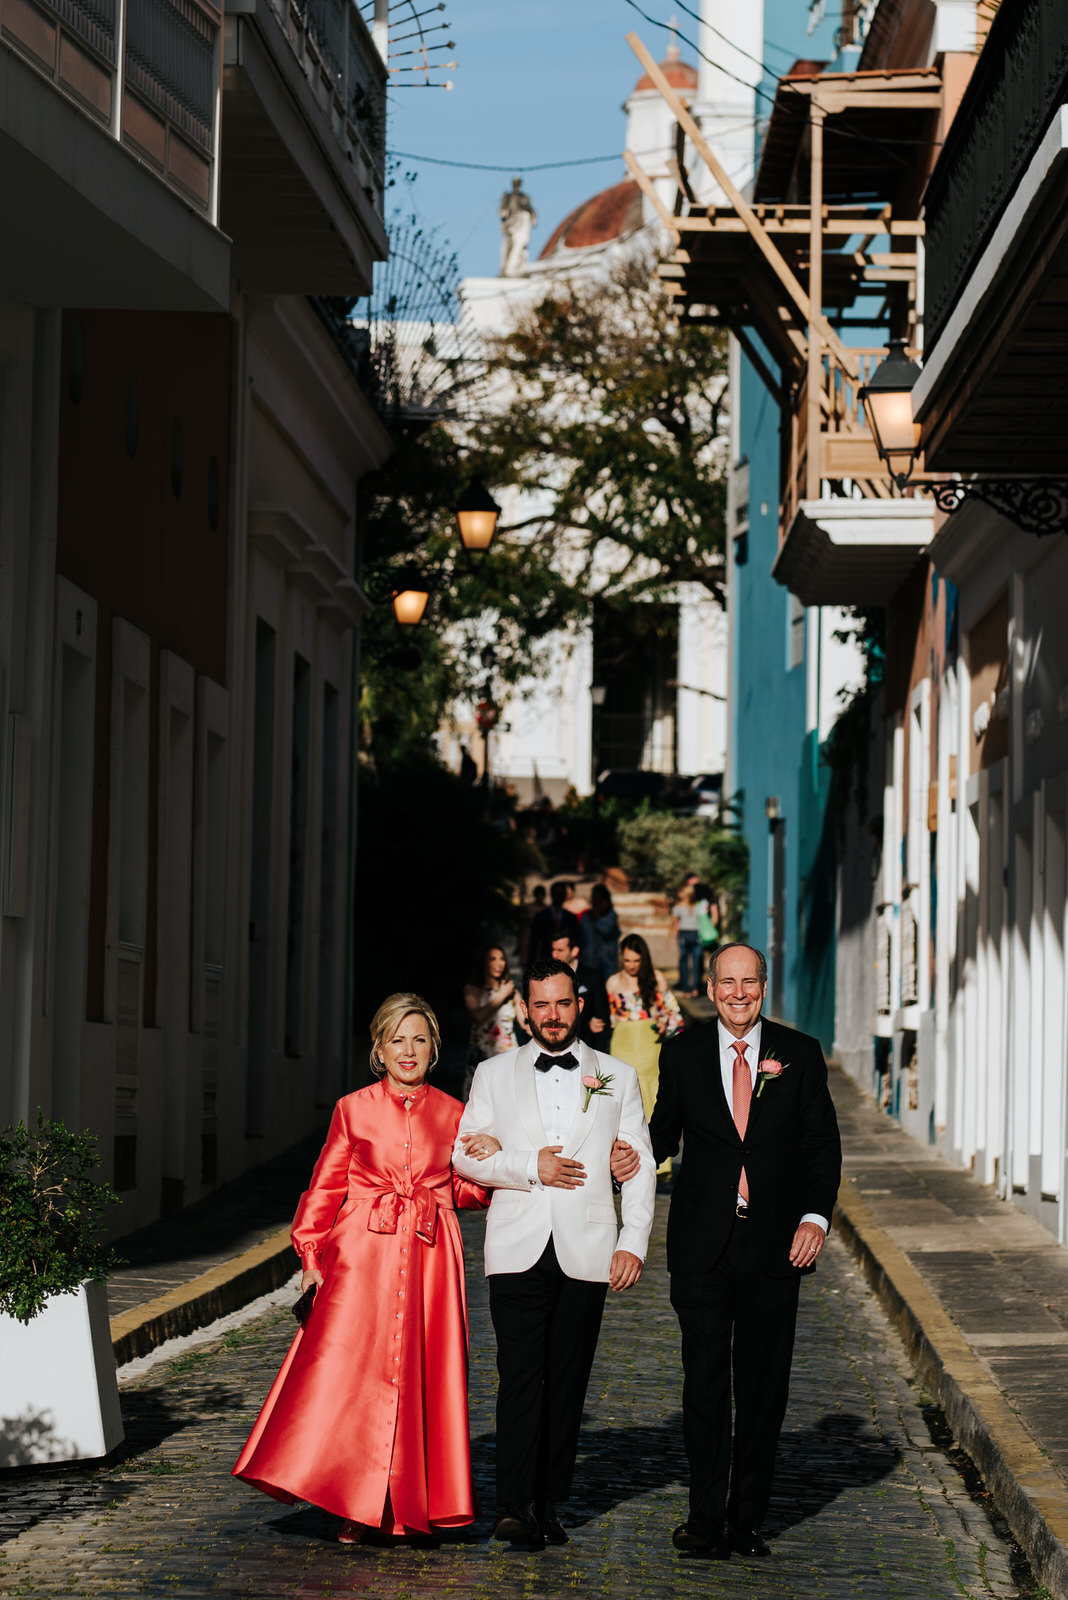 Groom and his parents walk down the streets of old san juan towards the wedding aisle